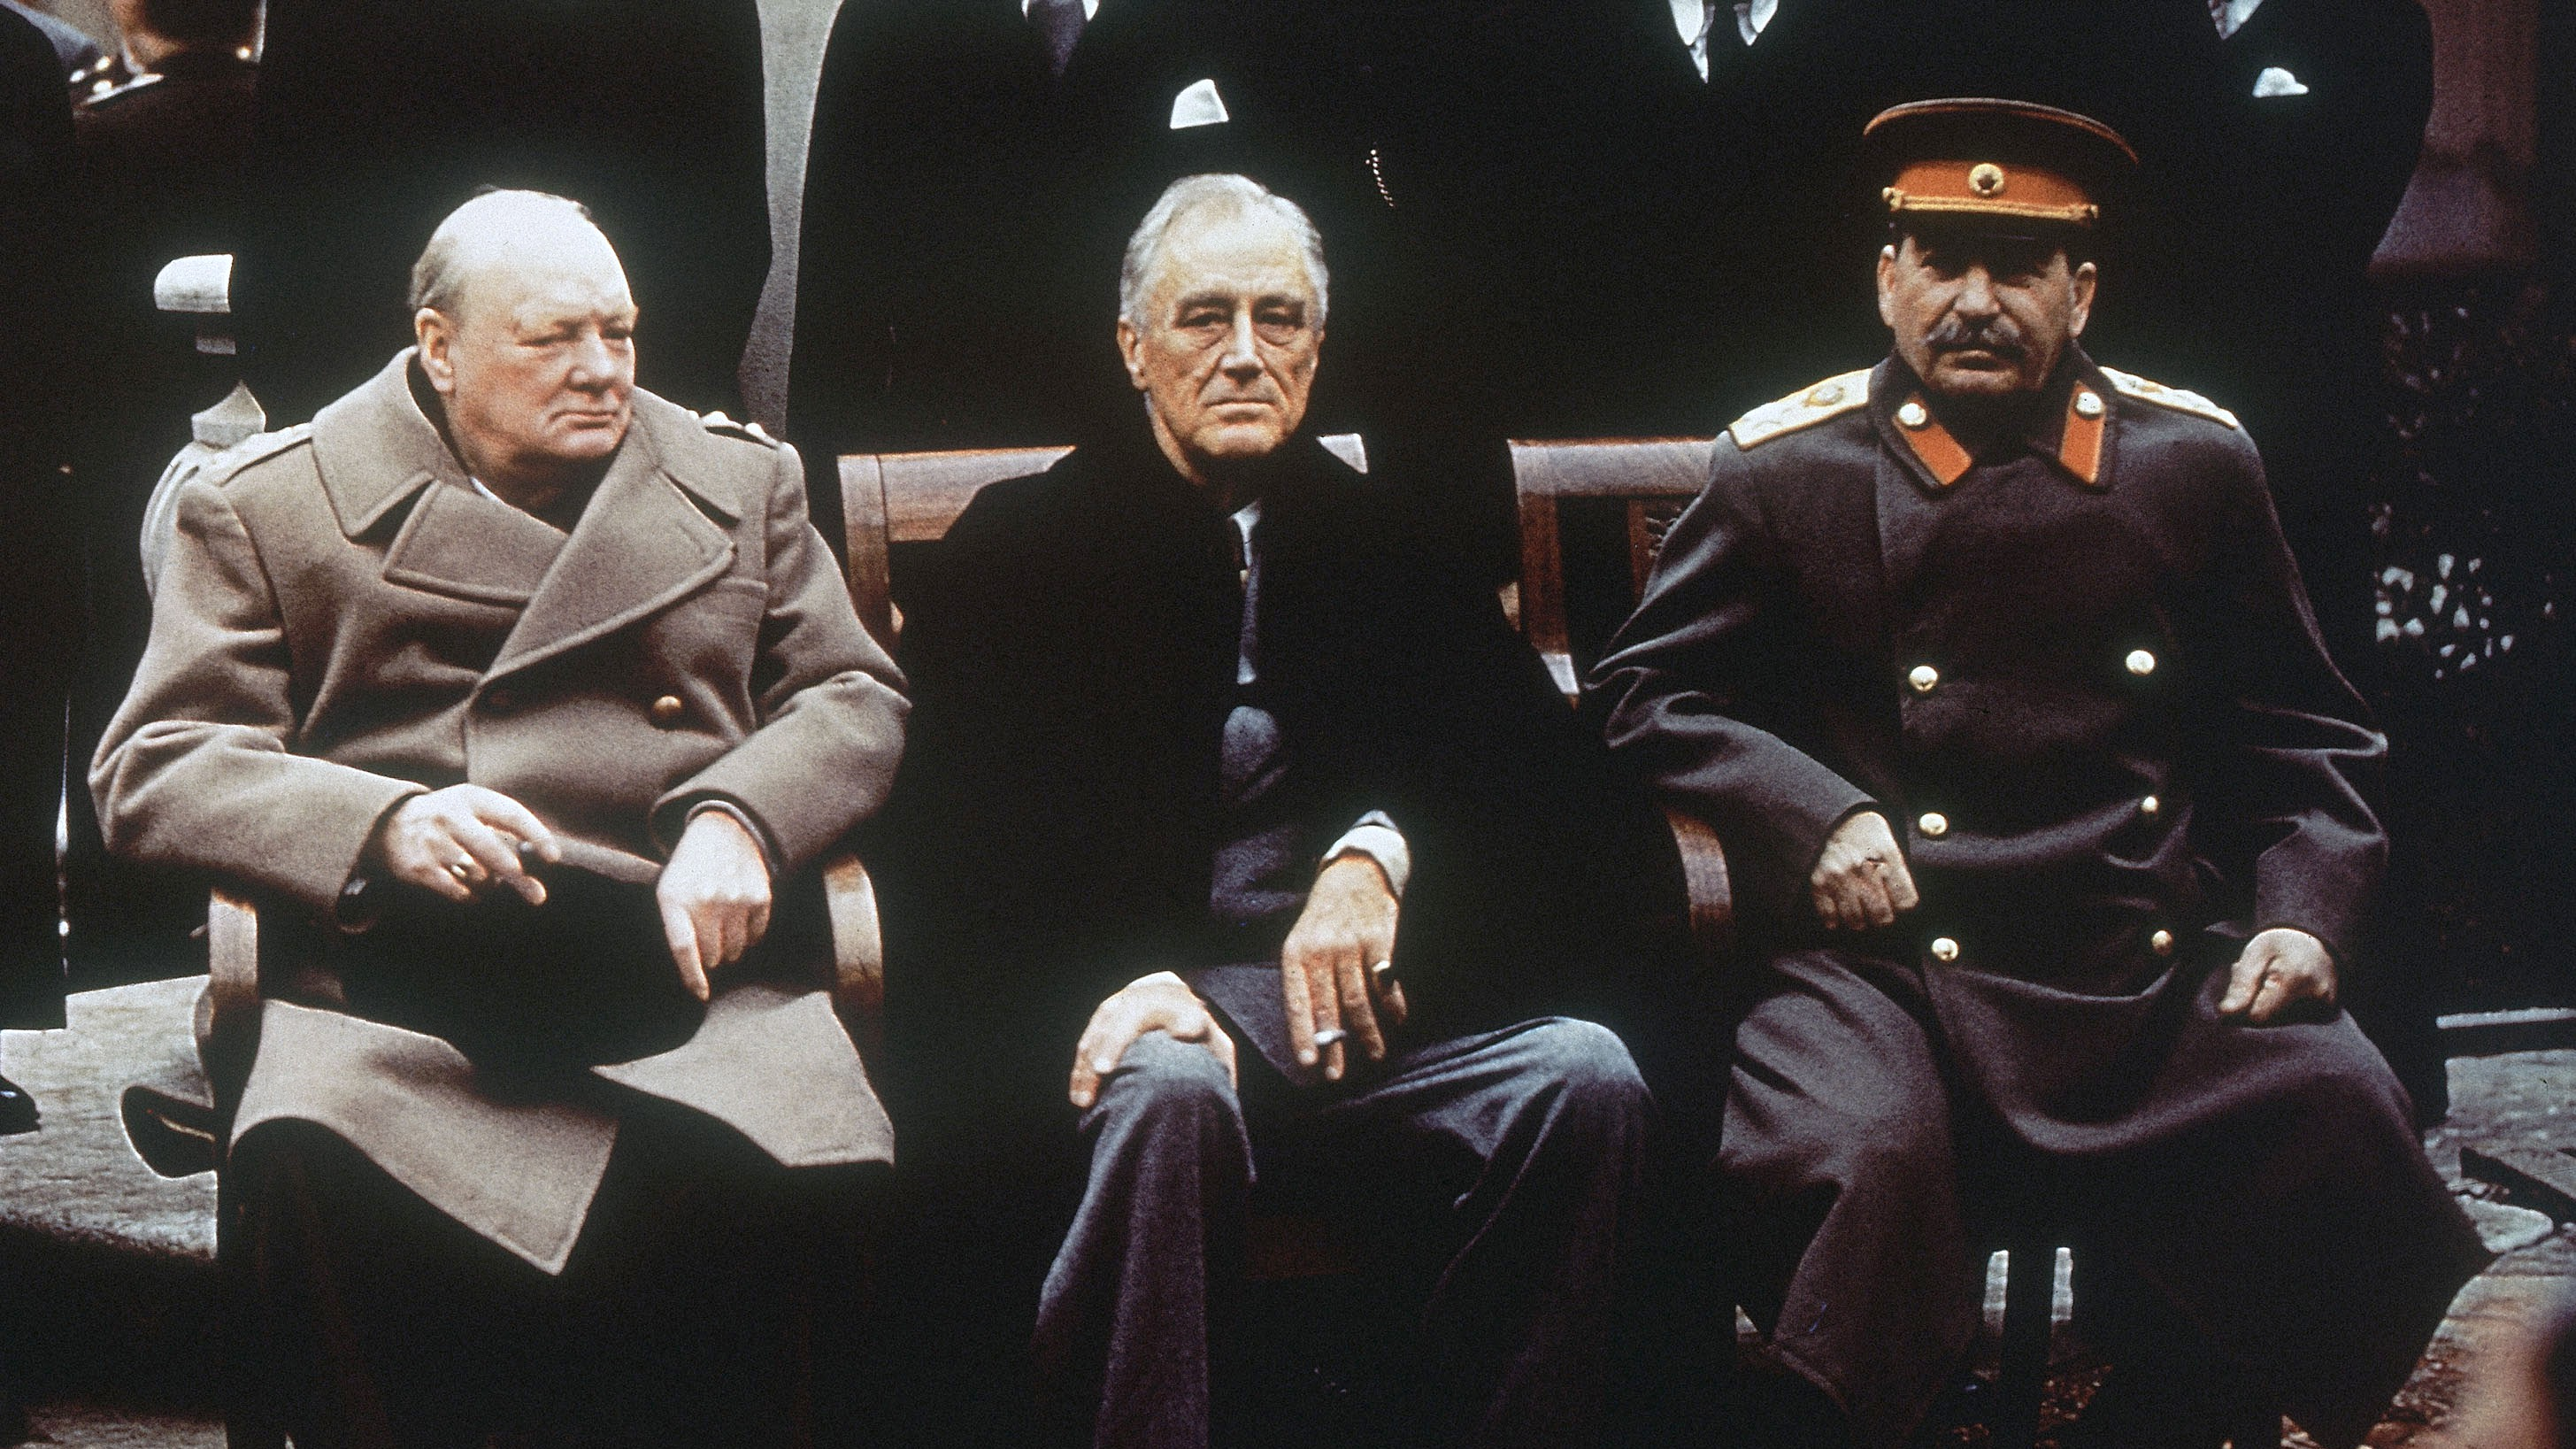 This is a Feb. 4, 1945, file photo of from left, British Prime Minister Winston Churchill, U.S. President Franklin Roosevelt and Soviet Premier Josef Stalin as they sit on the patio of Livadia Palace, Yalta, Crimea. Churchill Britain's famous World War II prime minister died fifty years ago on January 24 1965.